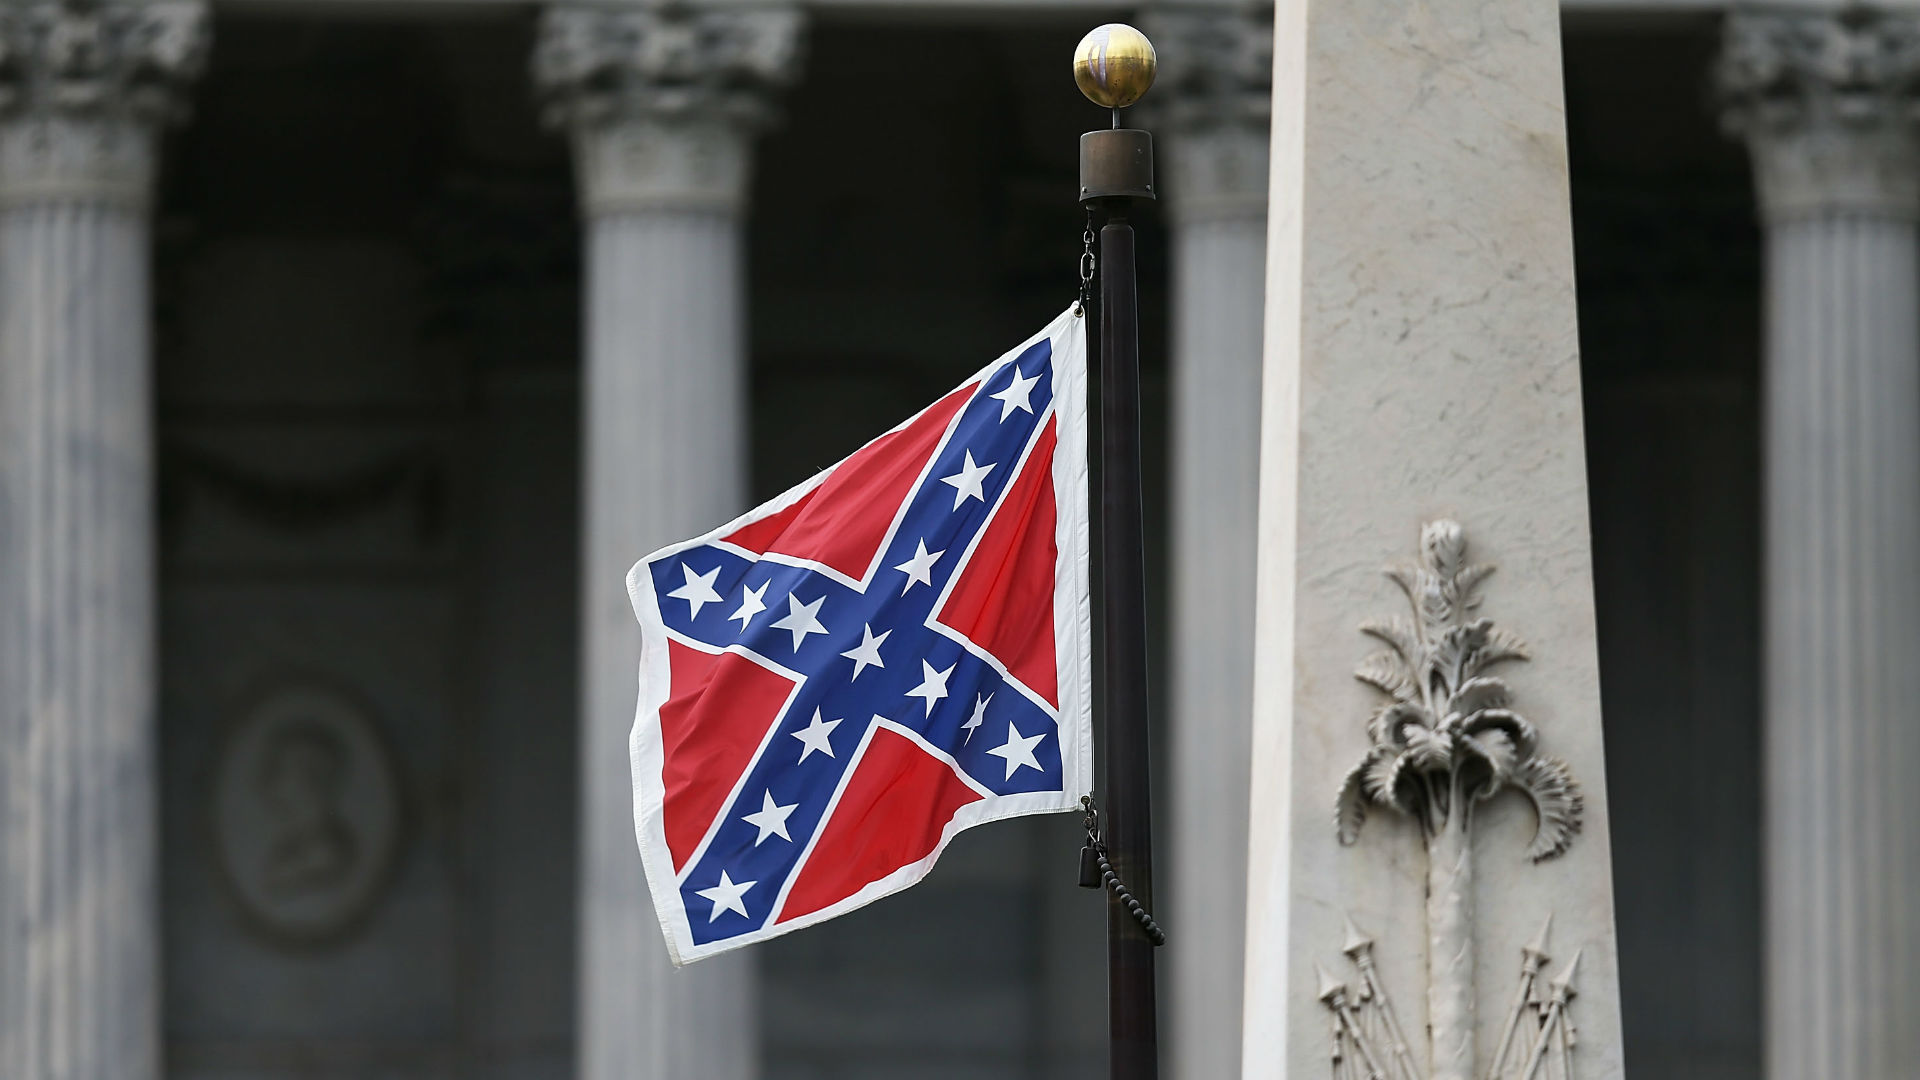 Confederate flag at S.C. State House